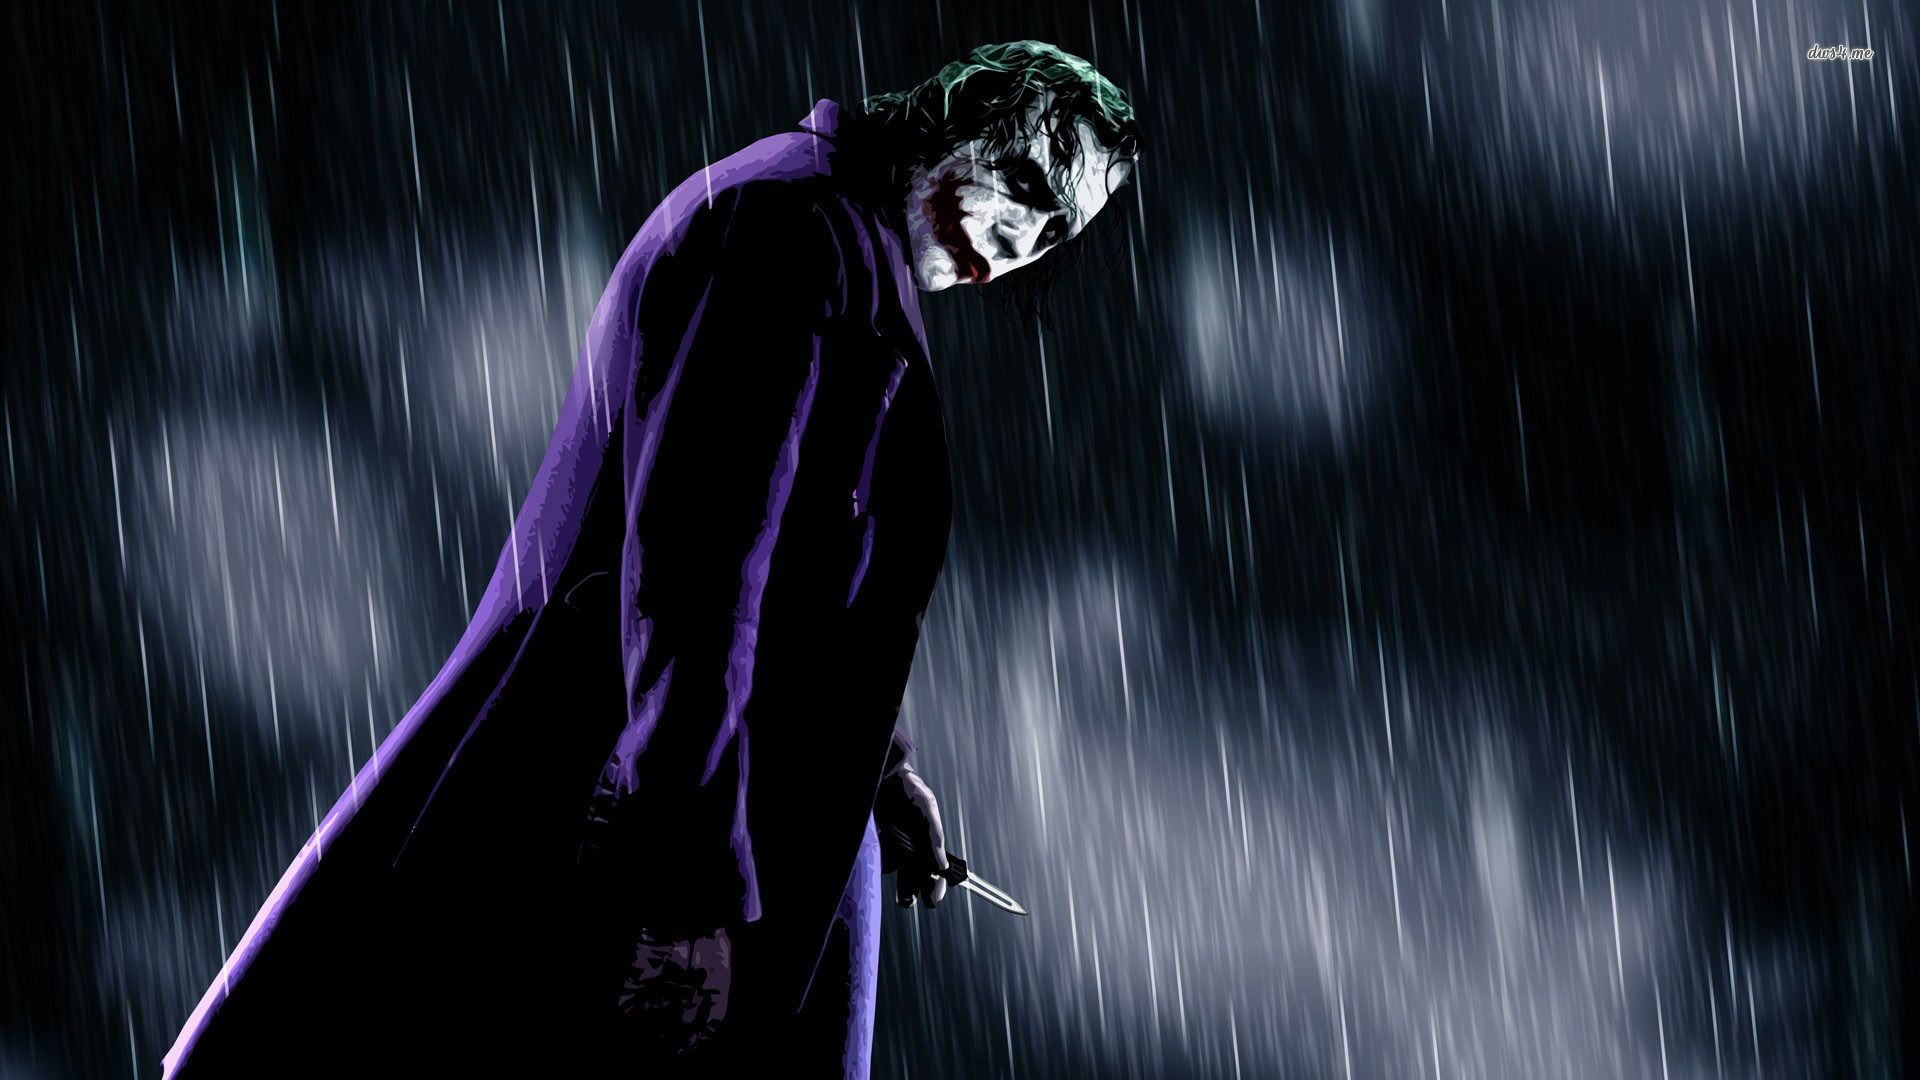 1920x1080 Movies Anime Batman The Dark Knight Joker MessenjahMatt Prisons Wallpapers HD Desktop And Mobile Backgrounds